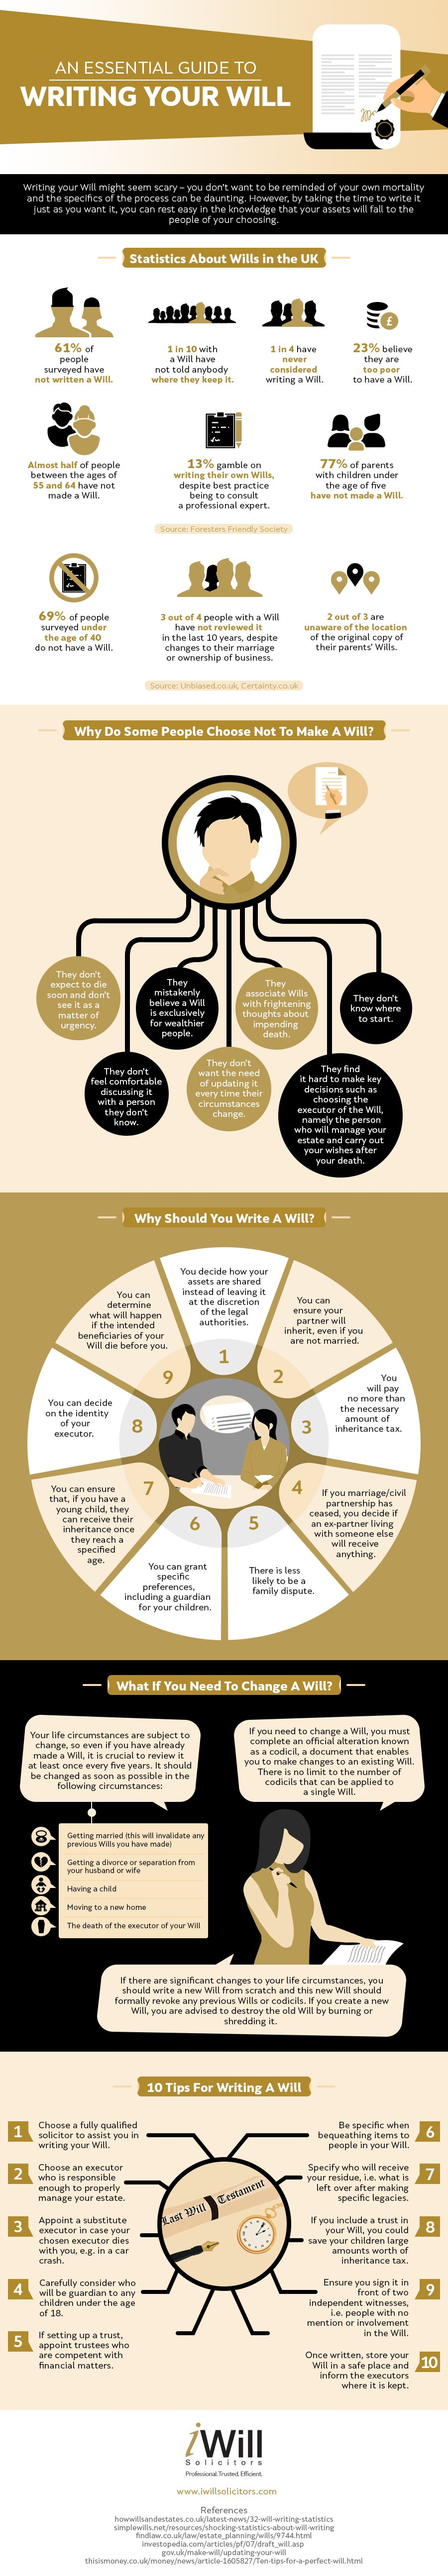 An Essential Guide to Writing Your Will